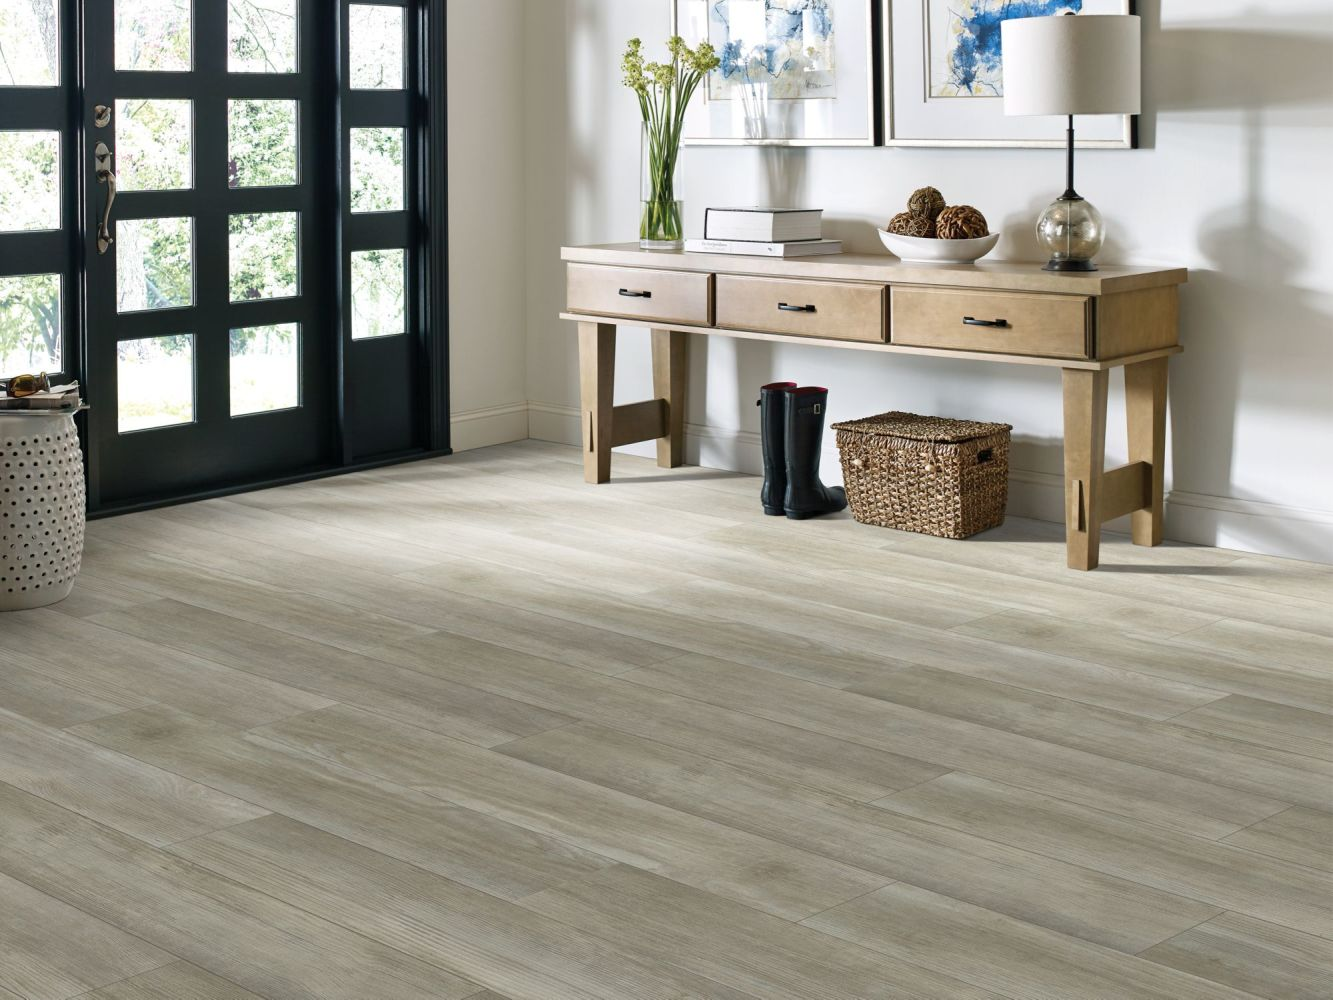 Shaw Floors Resilient Residential Tenacious Hd+ Accent Spanish Moss 05089_3011V